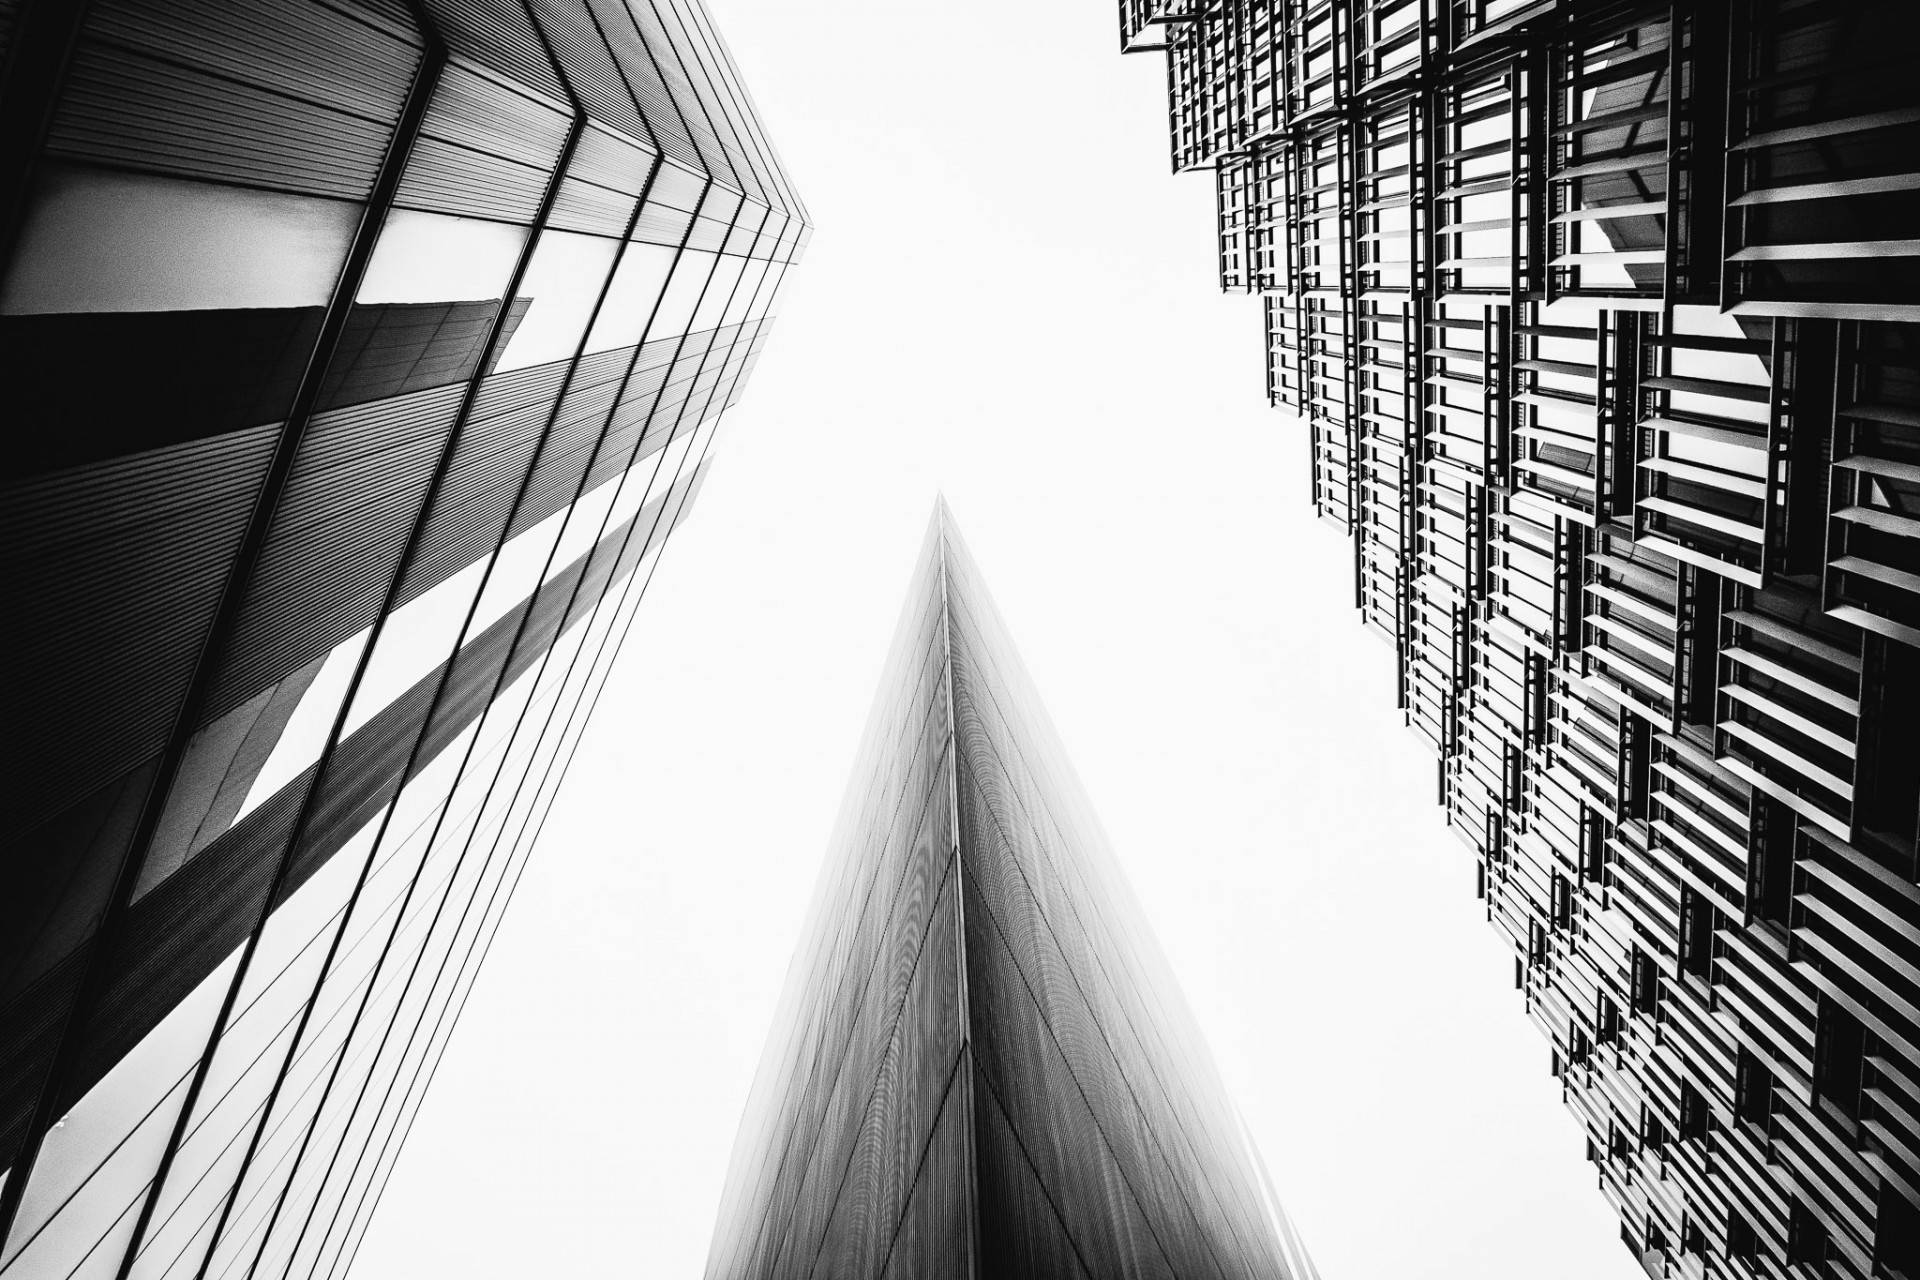 Looking up tall buildings in London's South Bank